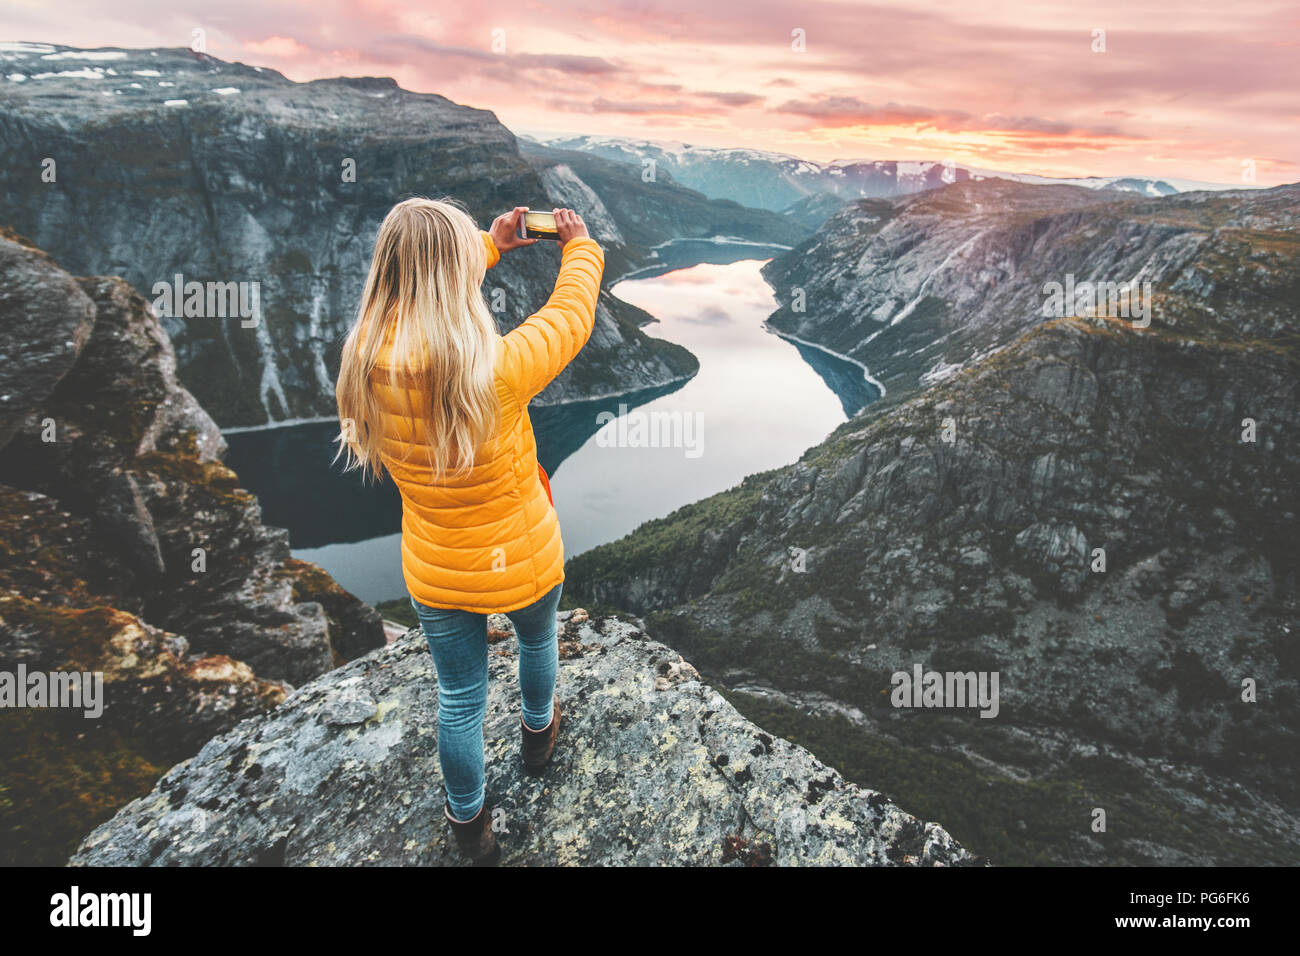 Woman taking photo by smartphone on mountain cliff over lake traveling in Norway adventure lifestyle active vacations modern technology connection con - Stock Image